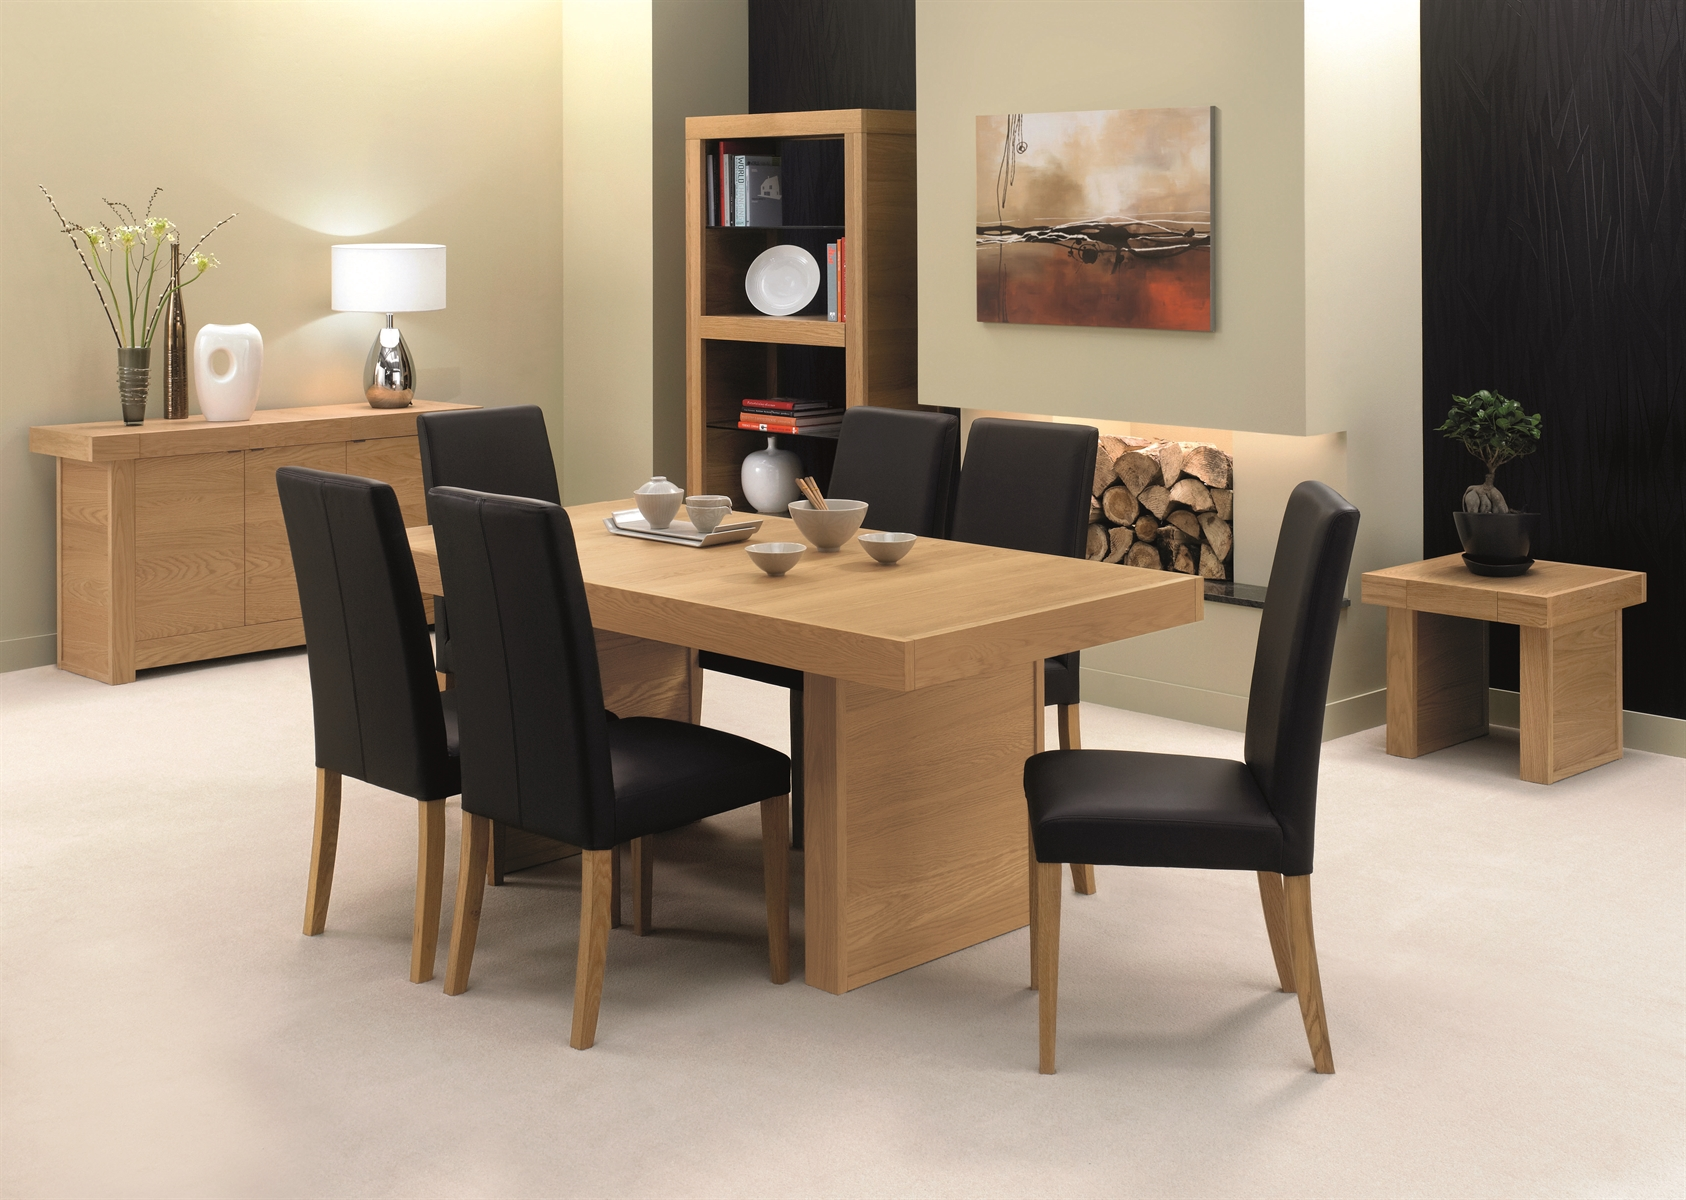 dining room furniture Furniture Store in Leicester